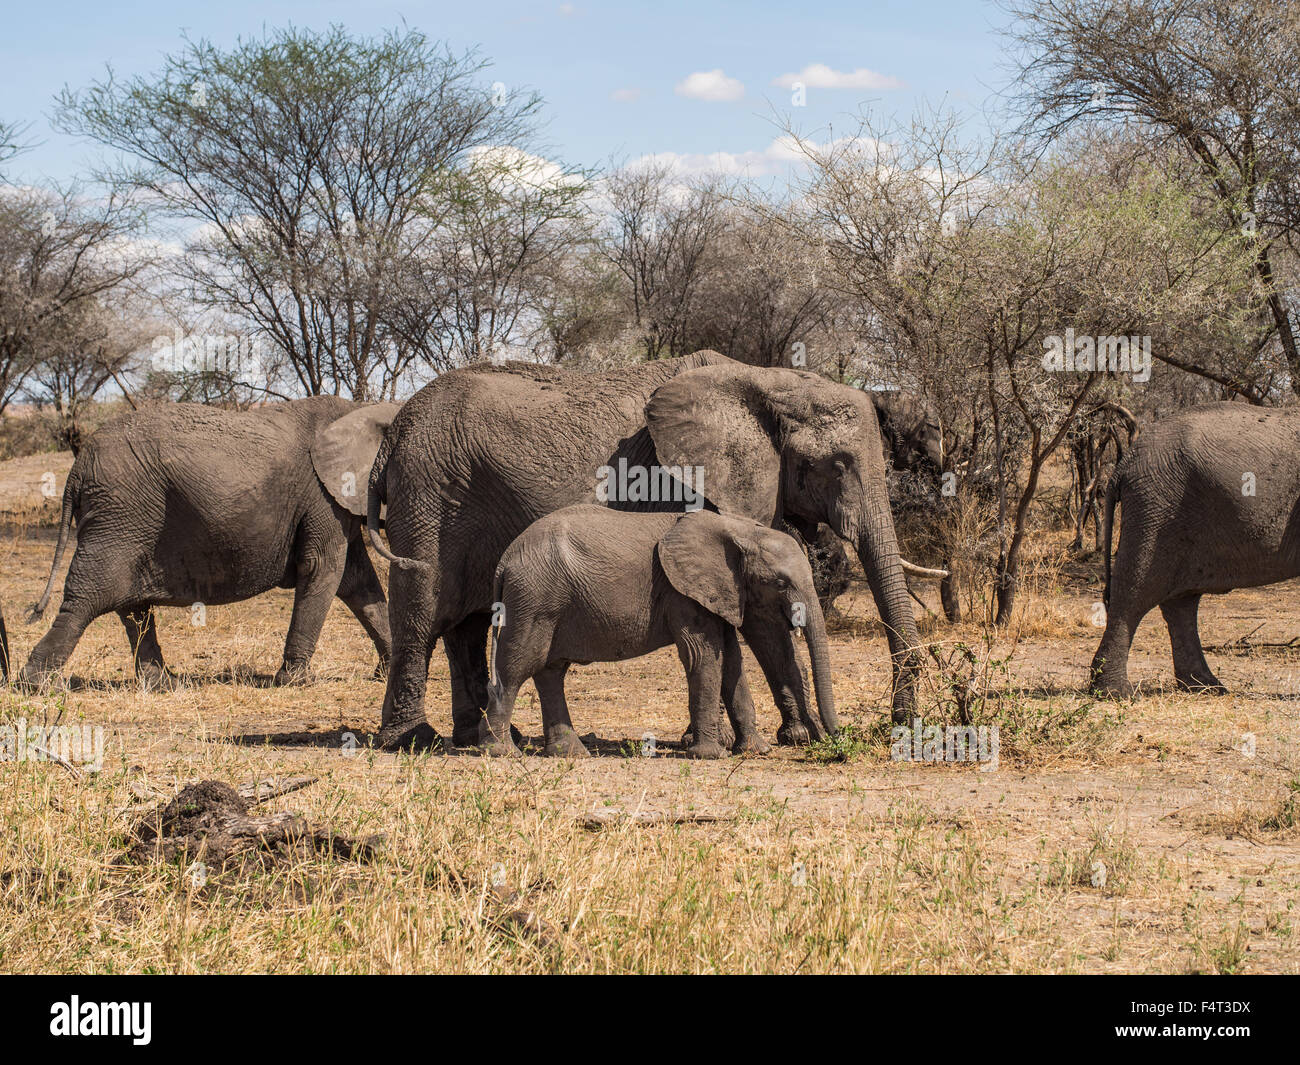 Herd of elephants in Tarangire National Park in Tanzania, Africa. Mother with one tusk and a baby in the focus. - Stock Image